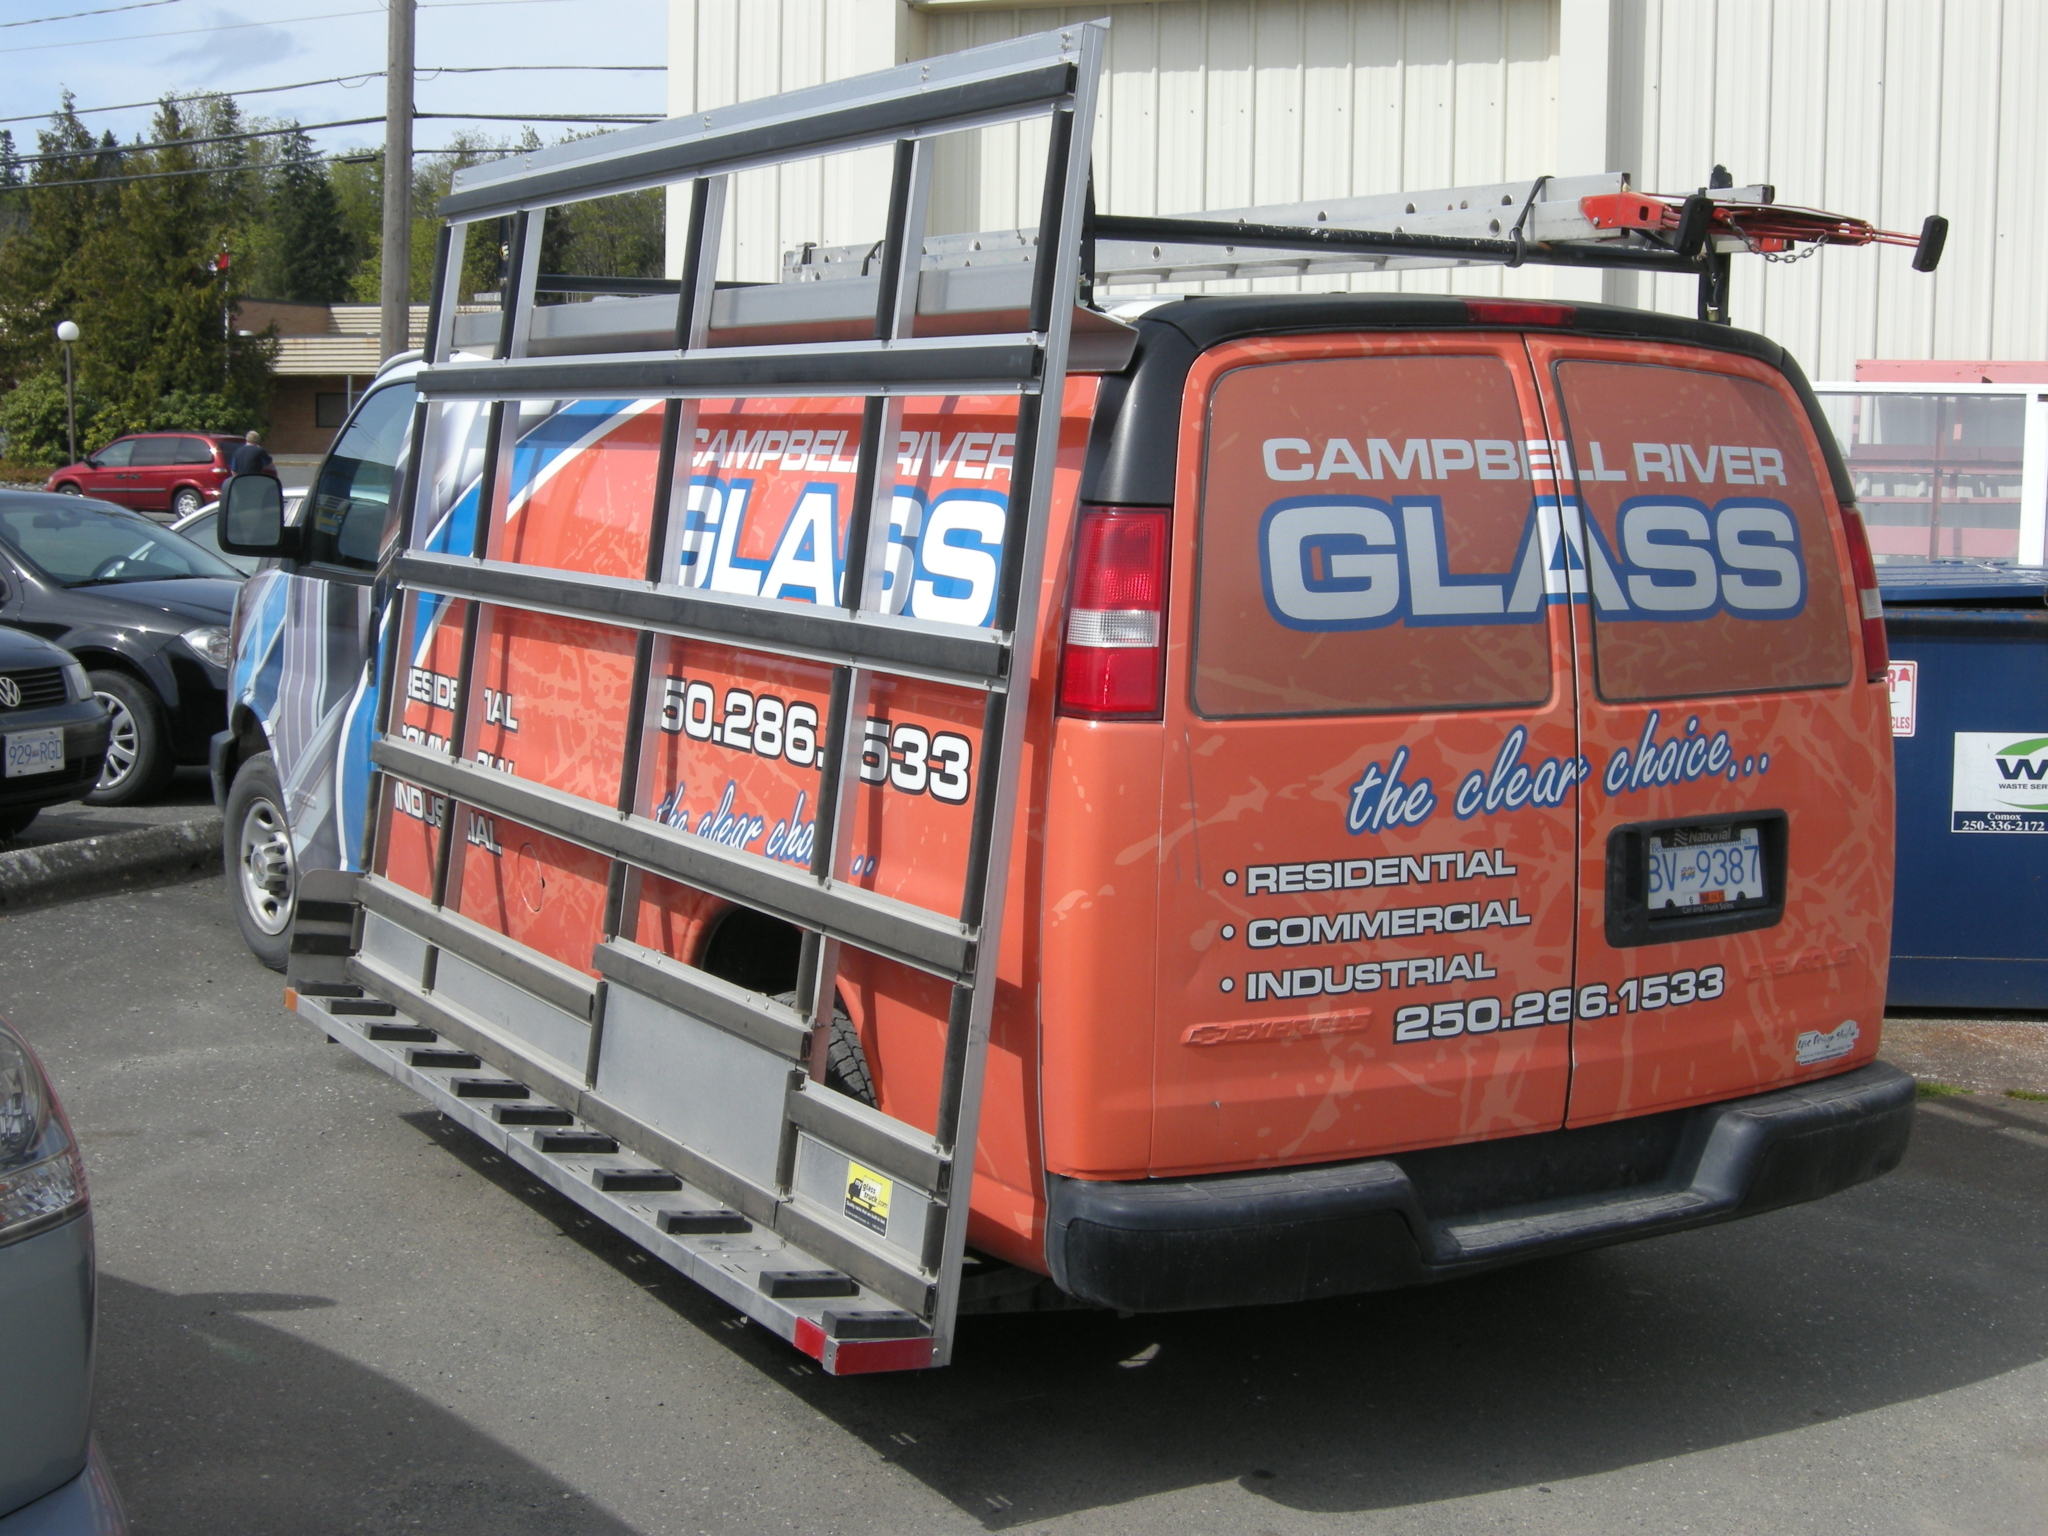 Campbell River Glass in Campbell River